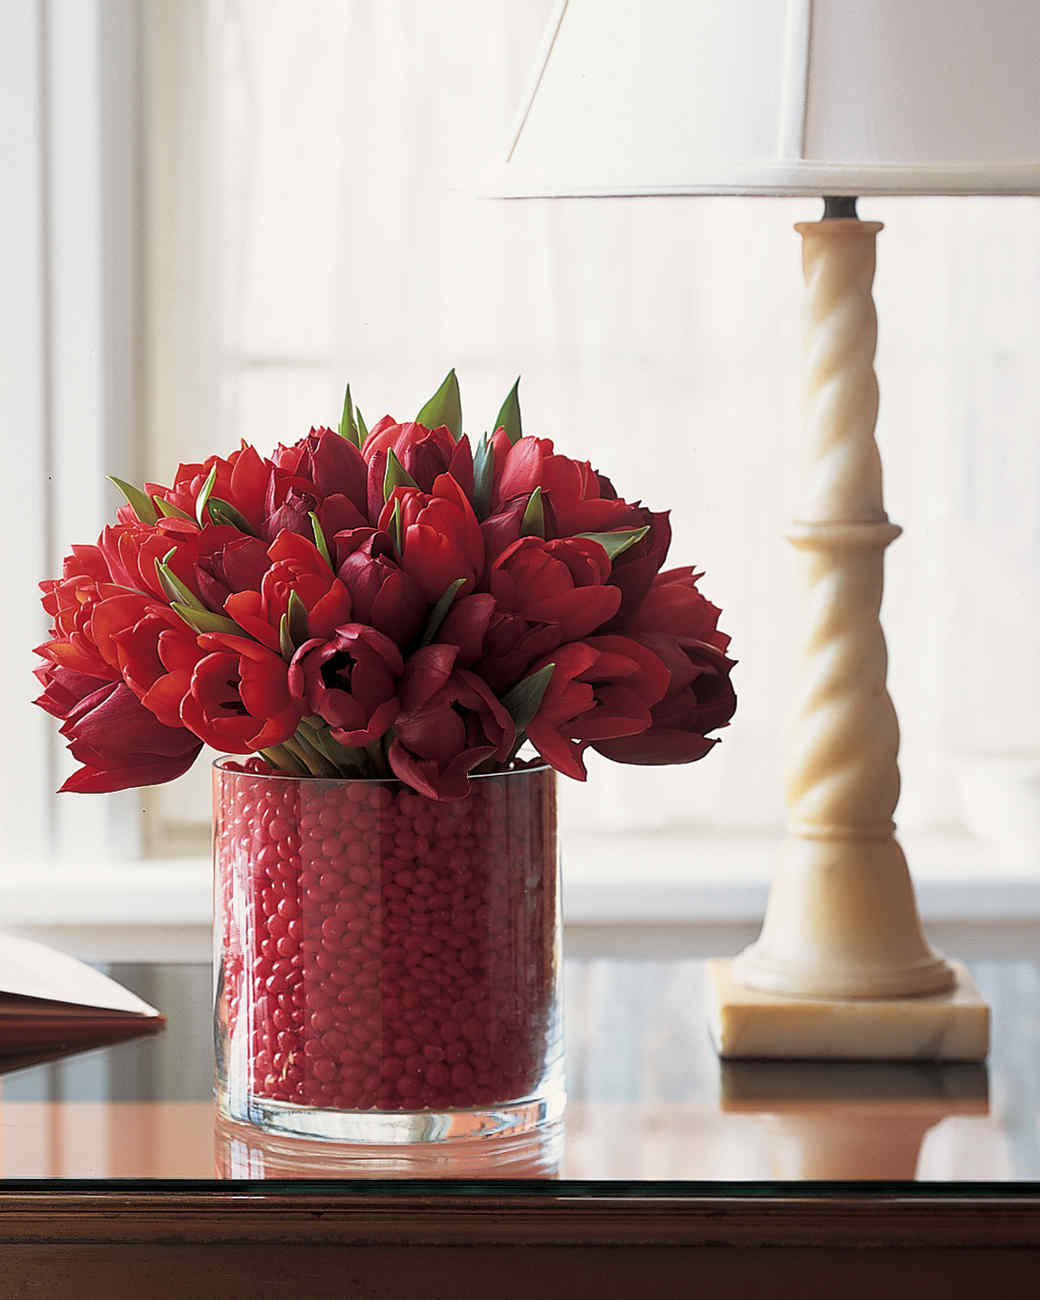 Candy and tulip bouquet martha stewart candy and tulip bouquet izmirmasajfo Choice Image